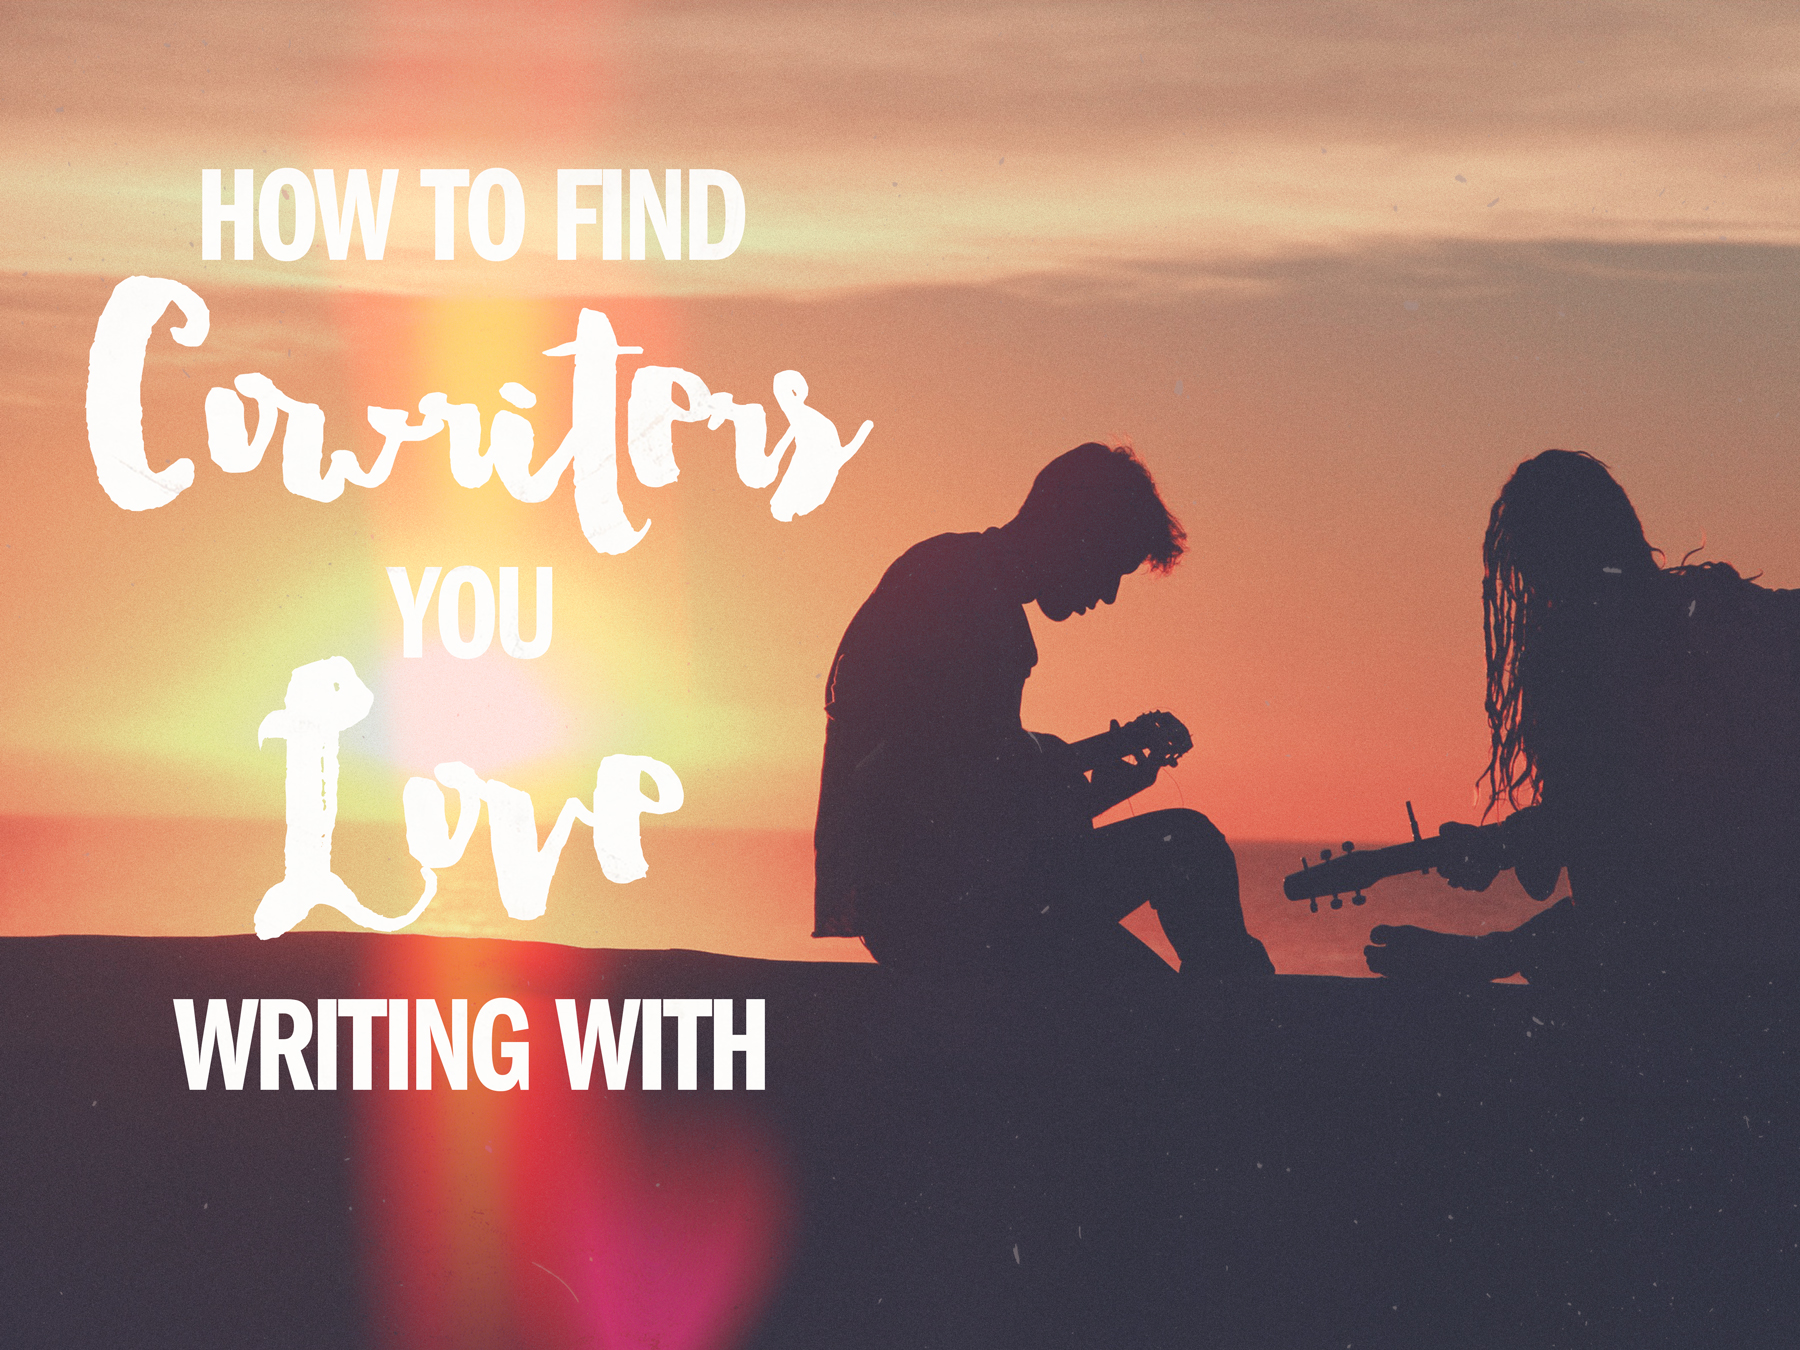 How to find the cowriters you were meant to write with. #songwriting #creativity #Nashville Songfancy.com